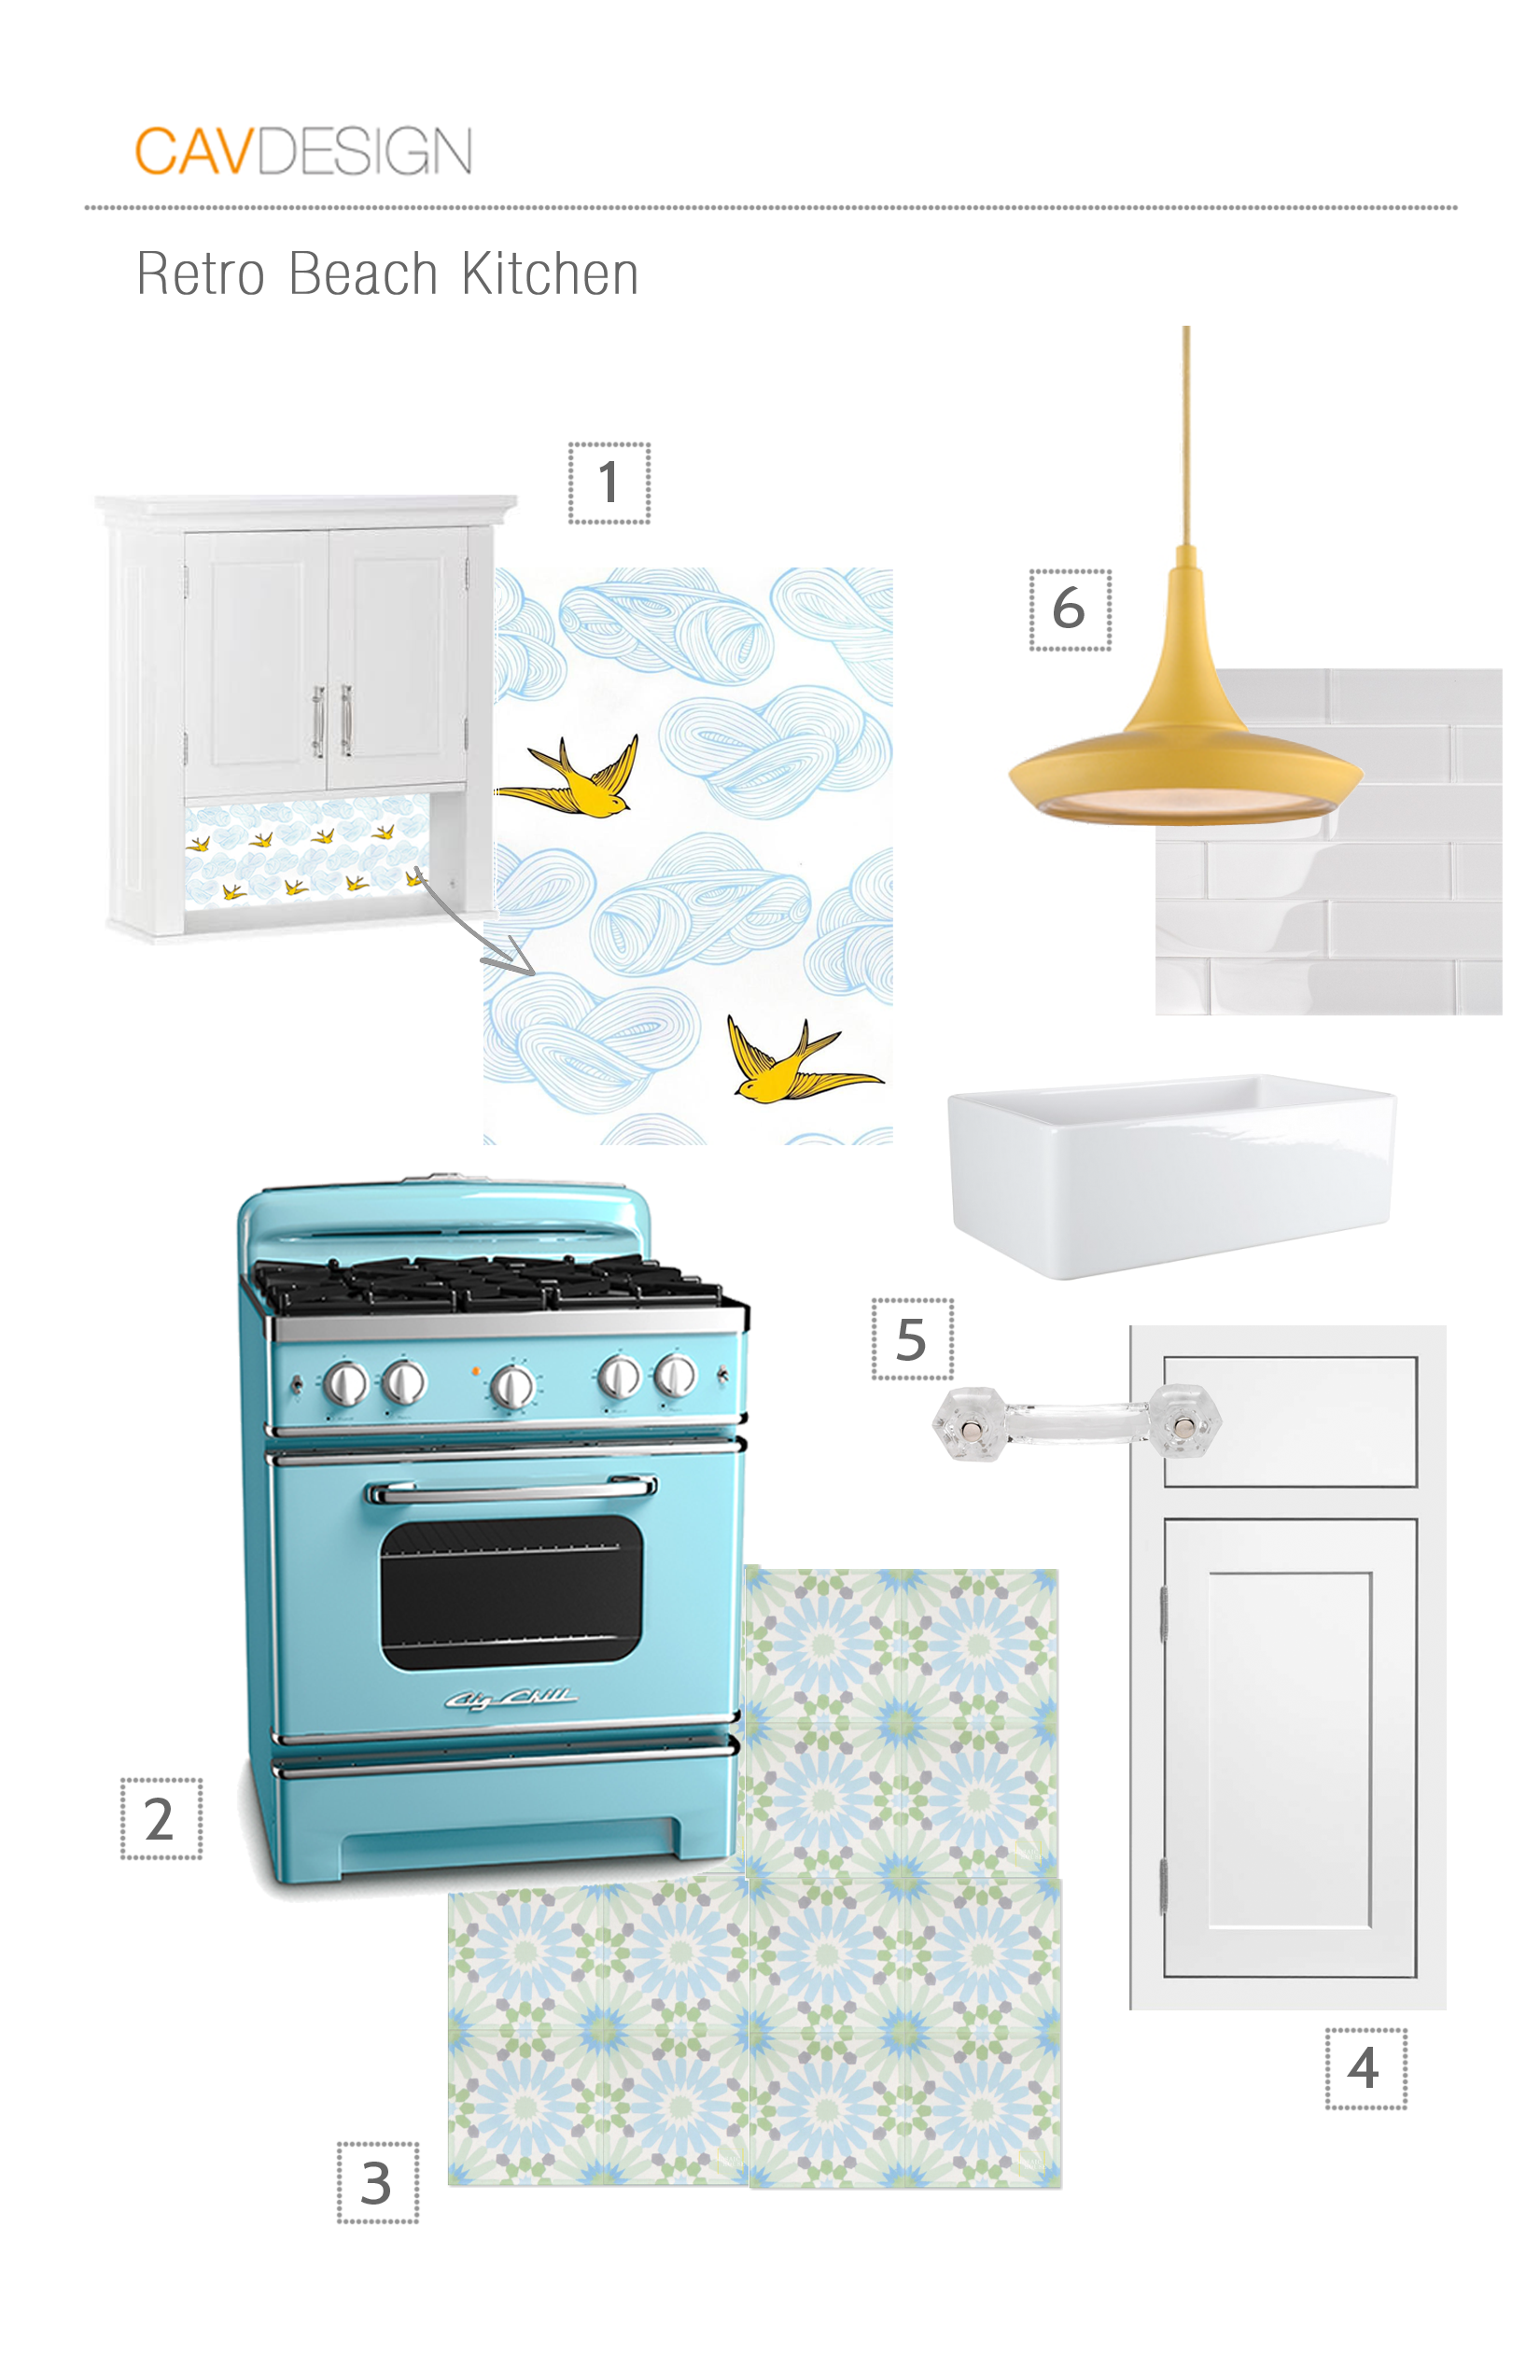 1. wallpaper from  Spoonflower  | 2.Range in Beach Blue from  Big Chill   | 3.Cement floor tile from  Mosaic House   | 4. Inset cabinets from  Cliqstudio  | 5. Glass handles from  Rejuvenation   6. Pendants from Dot&Bo